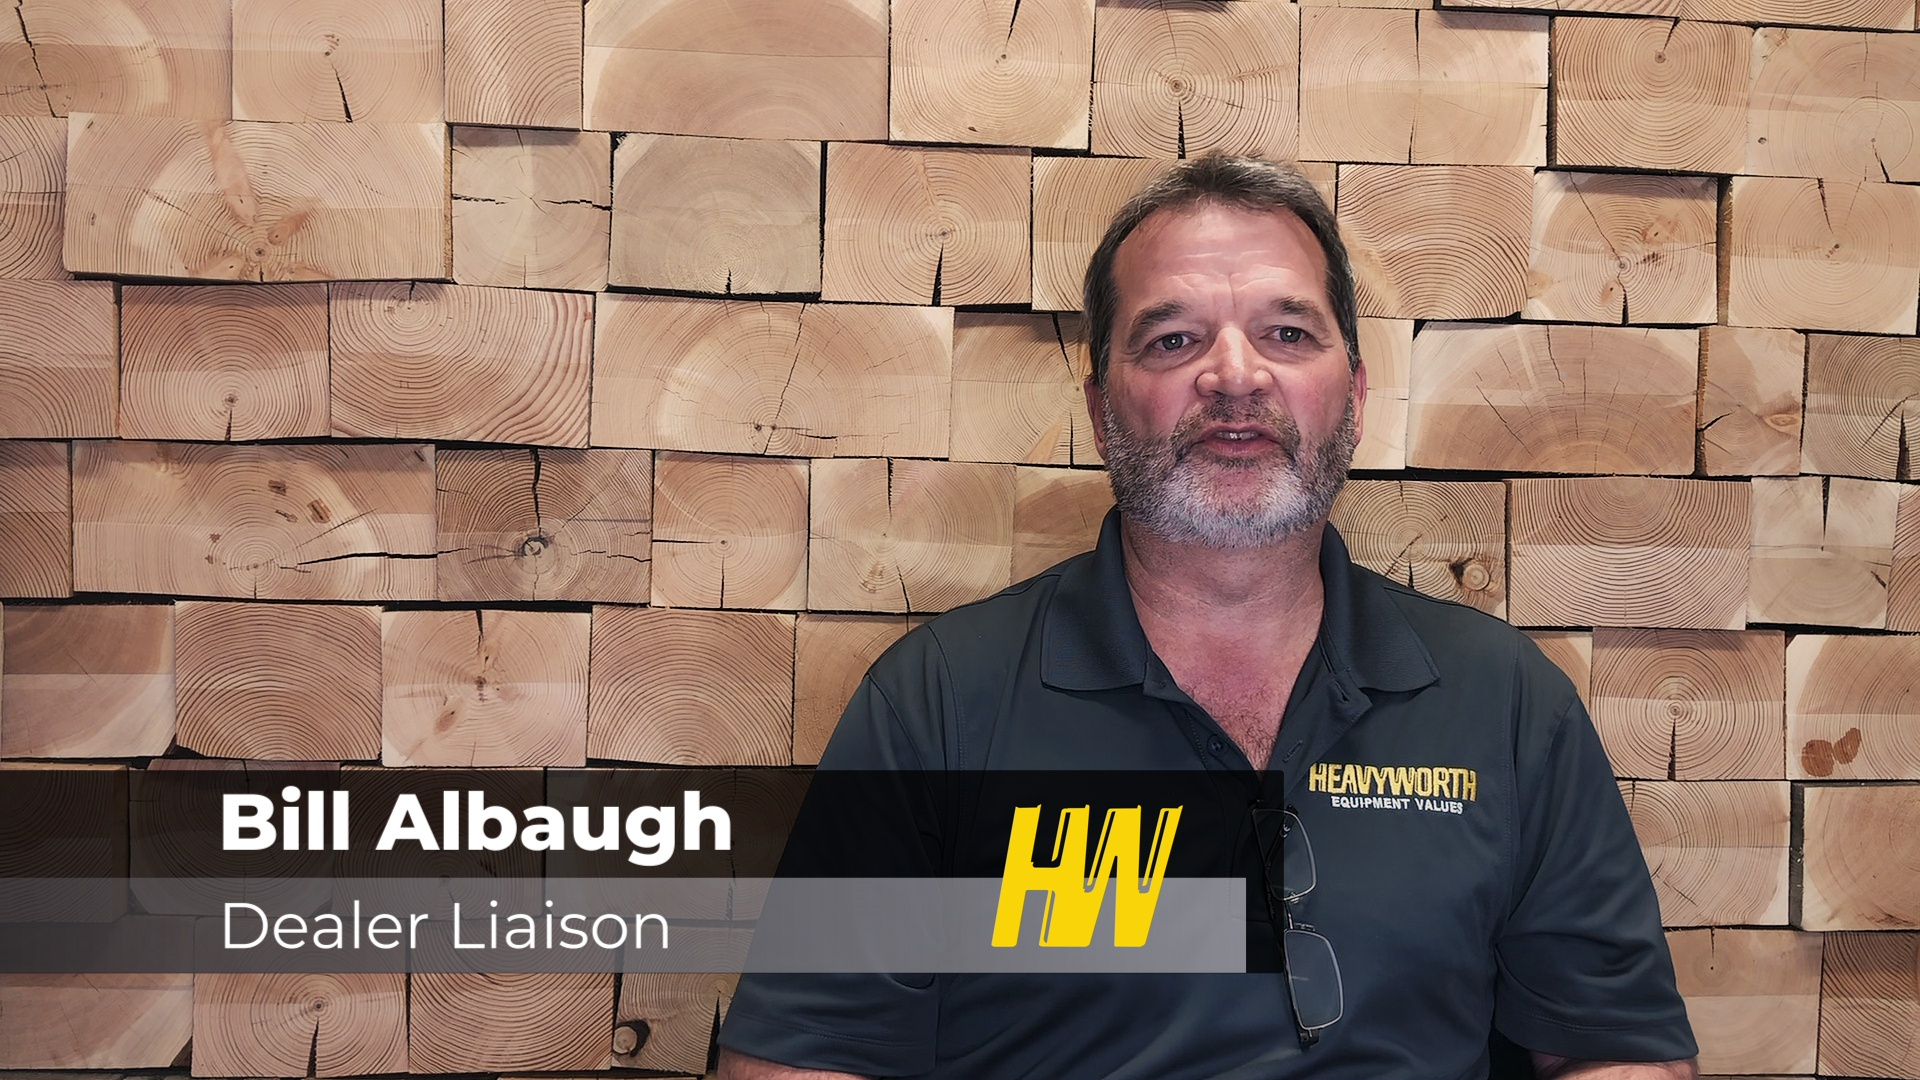 Bill Albaugh describes how heavy equipment storage decisions can impact the value of ag or construction equipment.